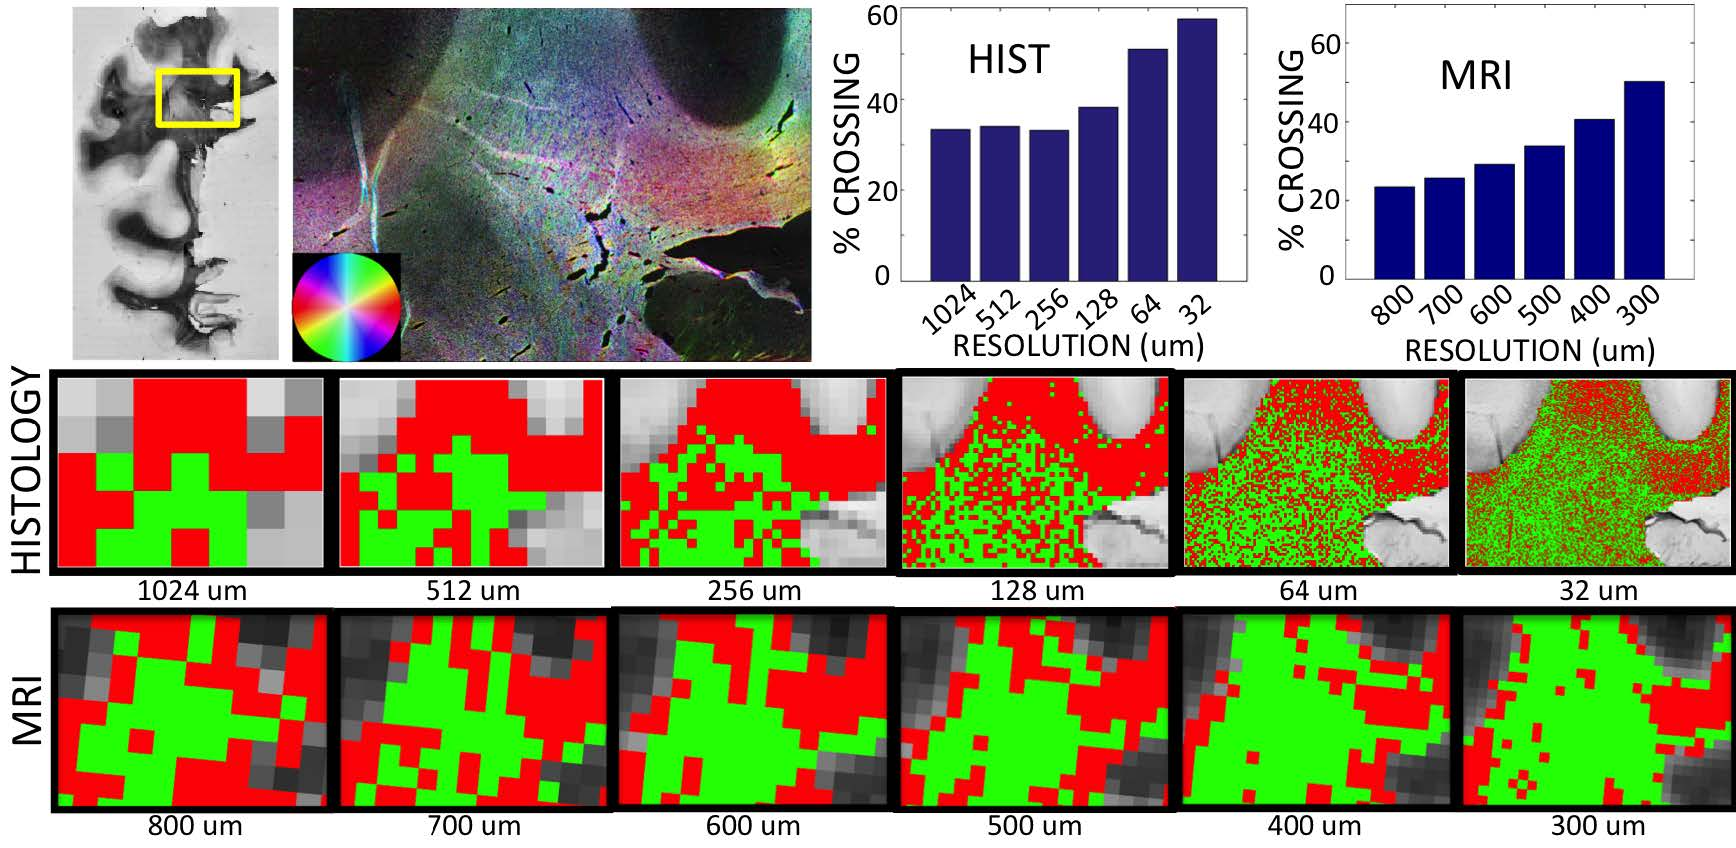 """Figure 1 shows the results of ST analysis in a region with in-plane fiber crossings. We find that, in both MRI and histology, the percent of voxels with crossing fibers actually increases as we increase the resolution. The middle and bottom rows highlight """"single"""" fiber regions in red and """"crossing"""" fibers as green, and qualitatively show that many regions with a """"single"""" fiber population at a coarse resolution exhibit crossing patterns when processed at a finer resolution."""